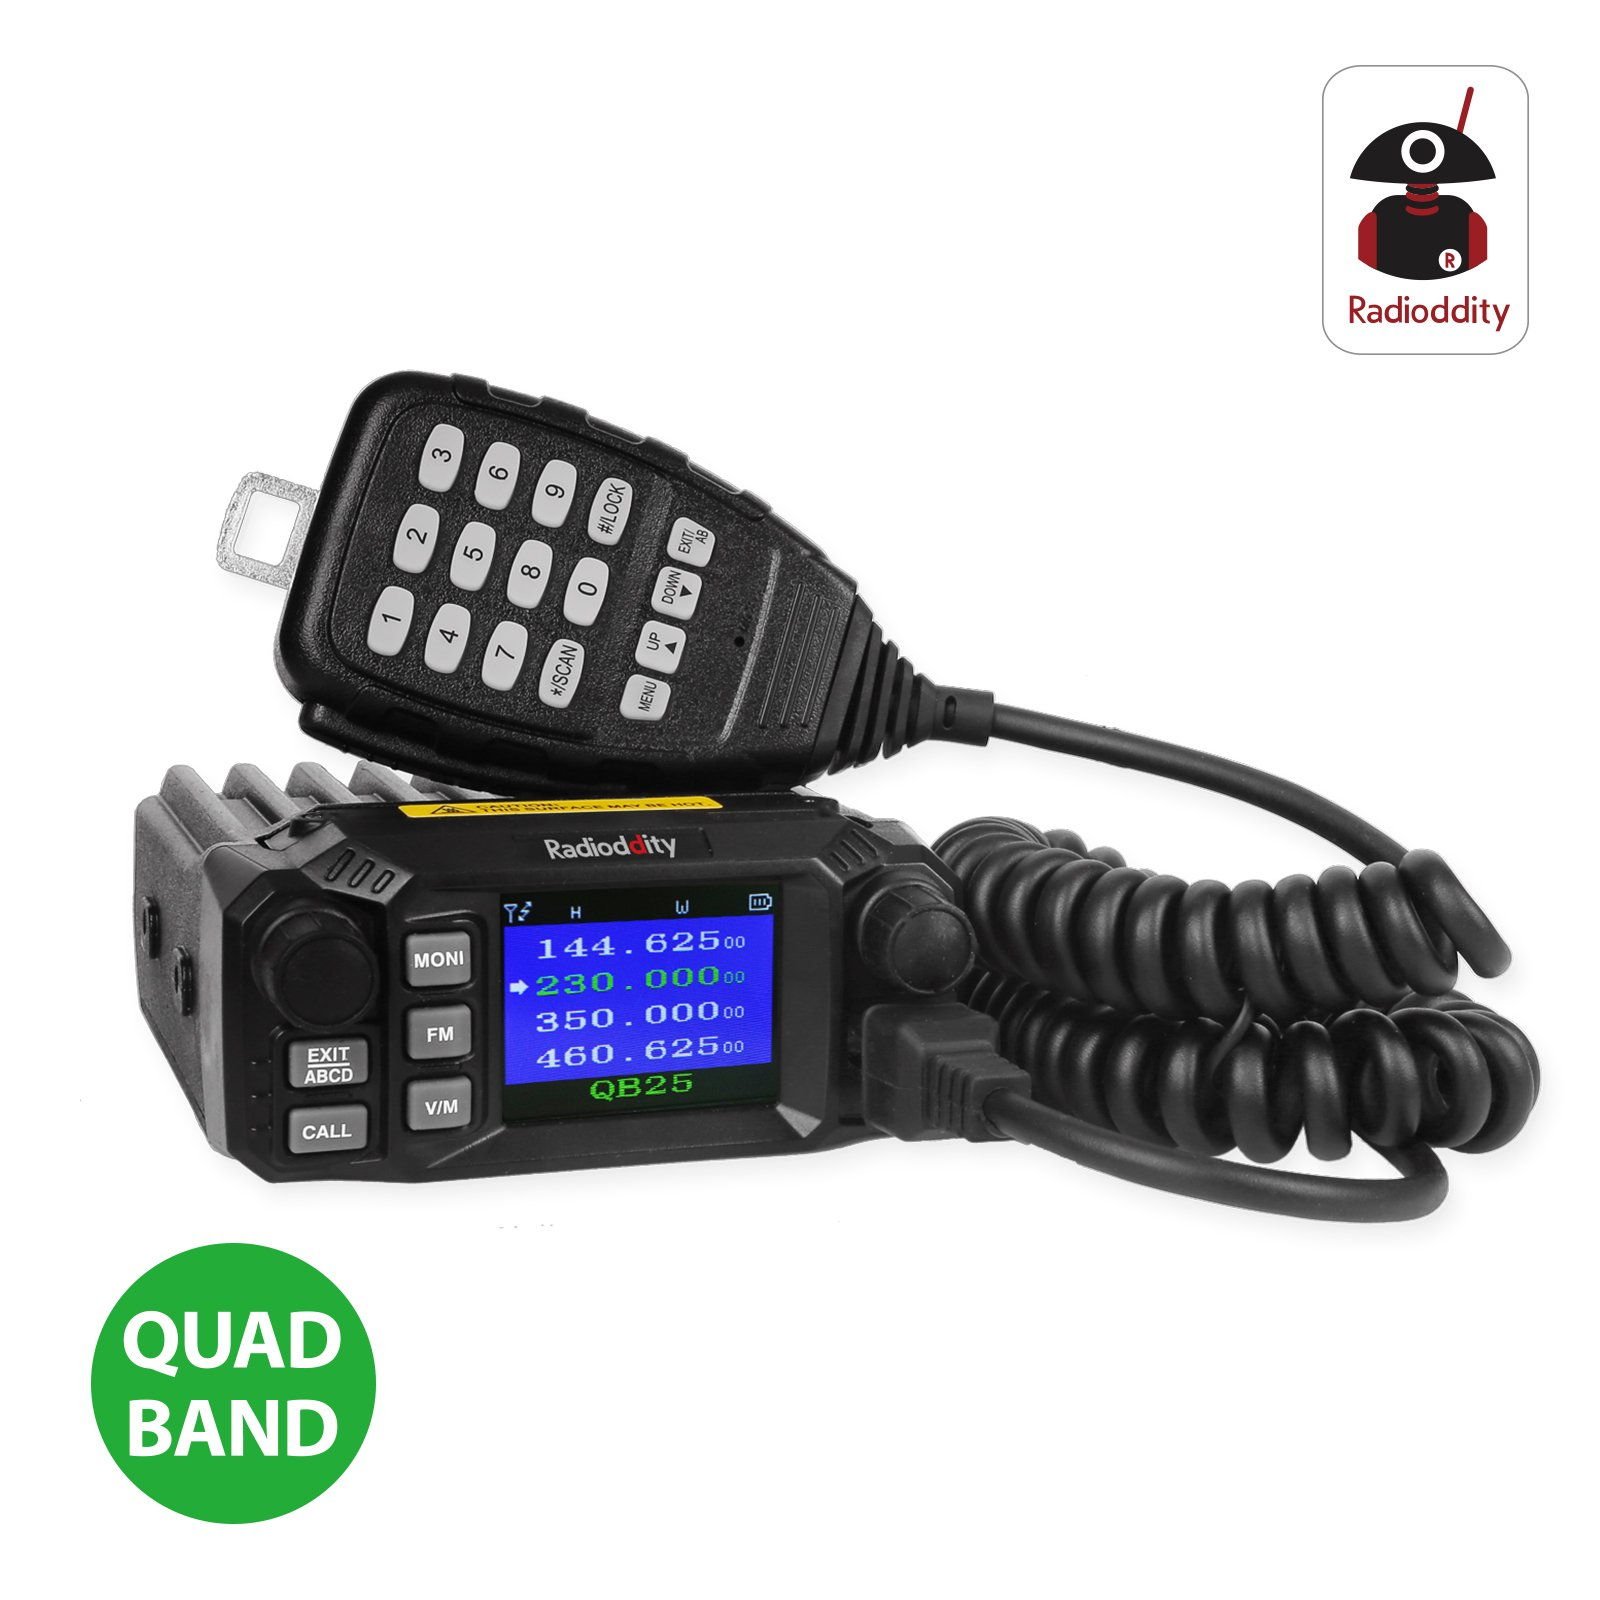 Radioddity QB25 Pro Quad Band Quad-standby Mini Mobile Car Truck Radio, VHF UHF 144/220/350/440 MHz, 25W Vehicle Transceiver with Cable & CD + 50W High Gain Quad Band Antenna by Radioddity (Image #9)